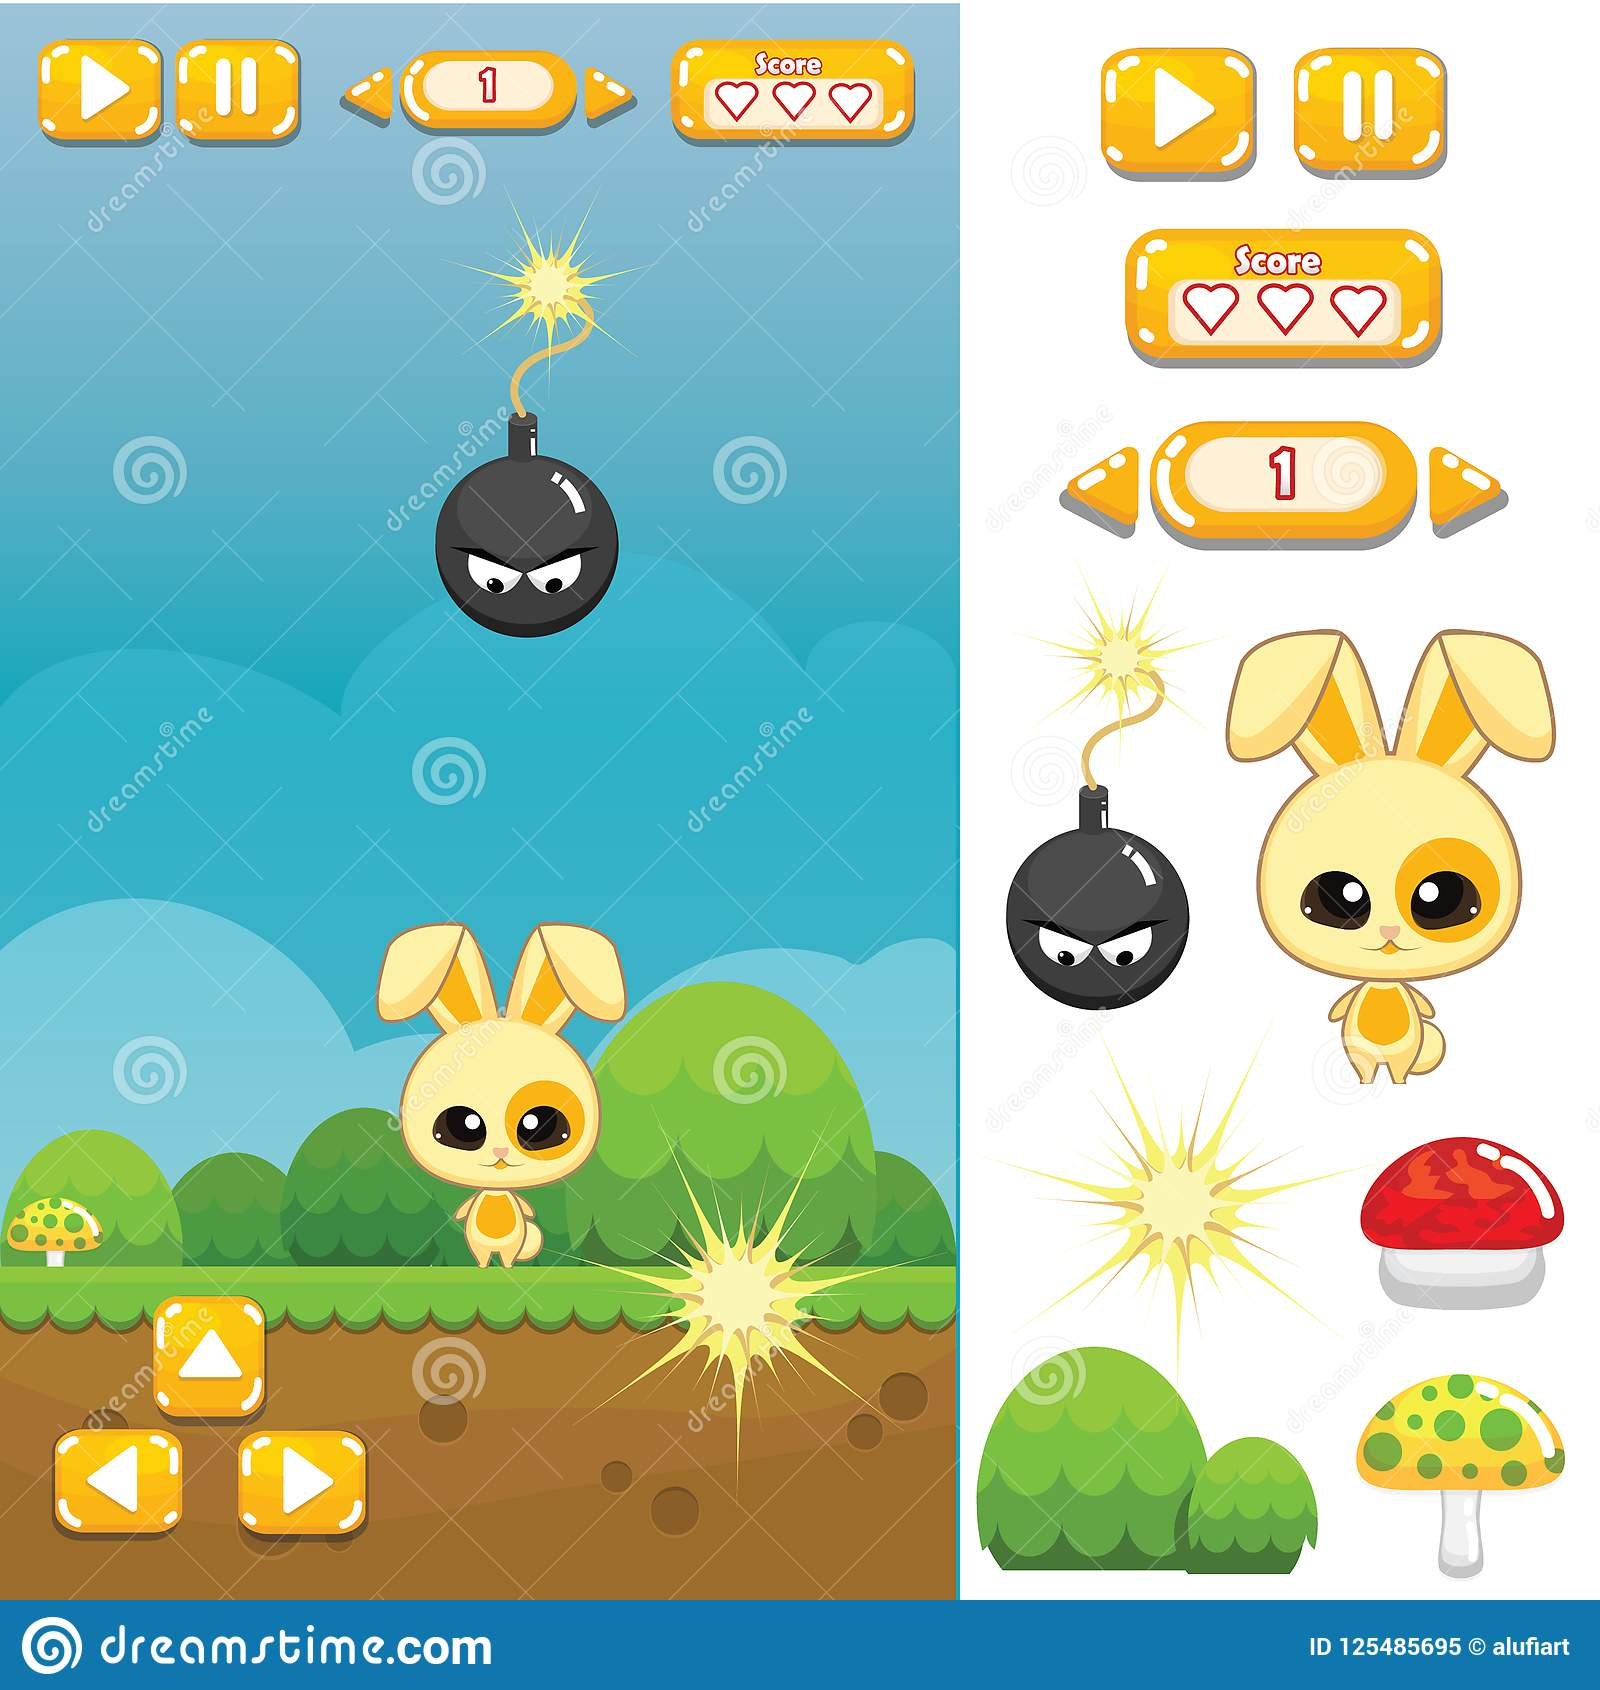 the bunny game download ita